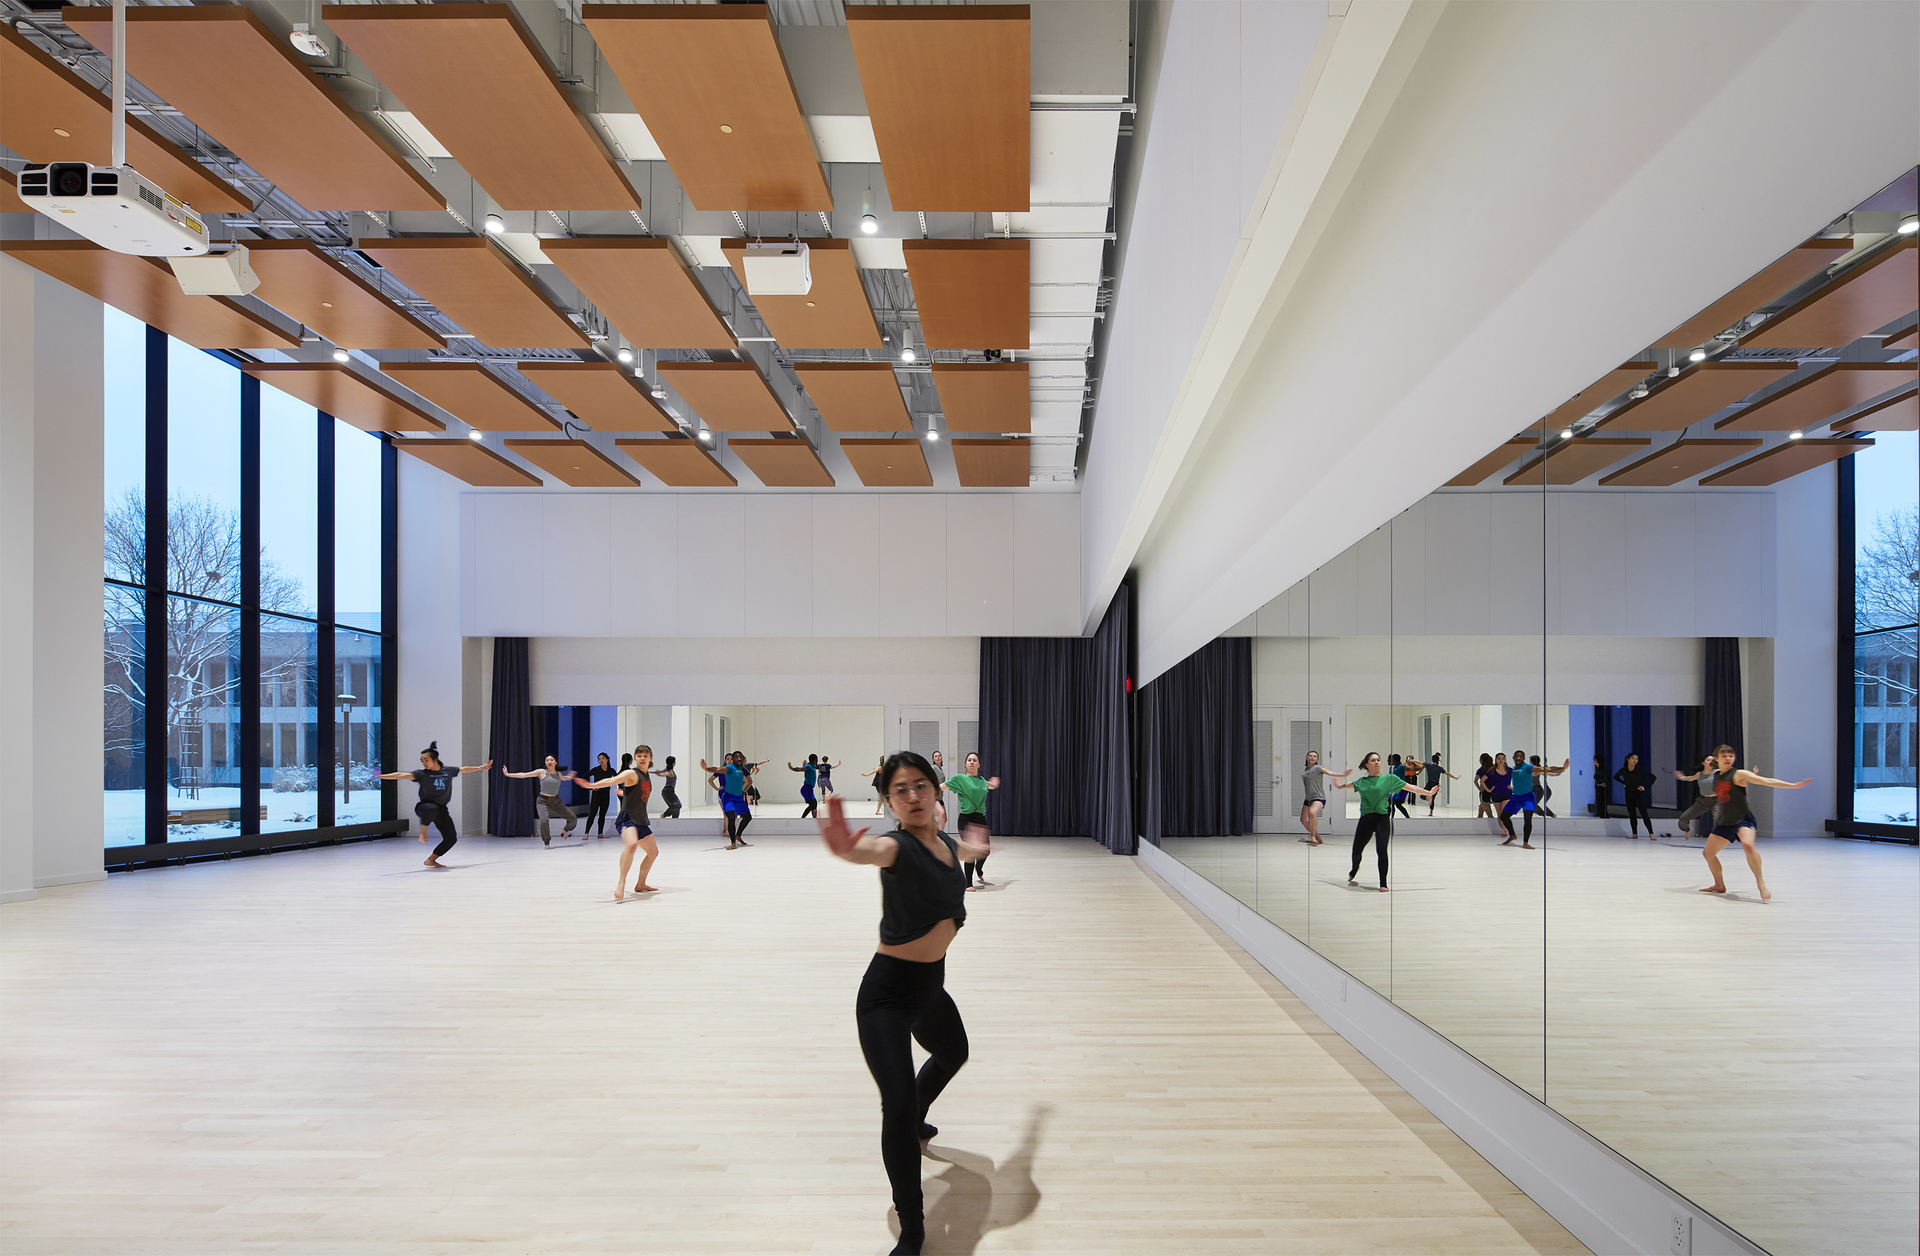 Macalester College's new Theater and Dance building is part of the Janet Wallace Fine Arts Center (JWFAC) renovation project. Over 125 of our Atria 4 cylinders are used to illuminate the entire building. Including this 2,400-square-foot Fox Dance studio.